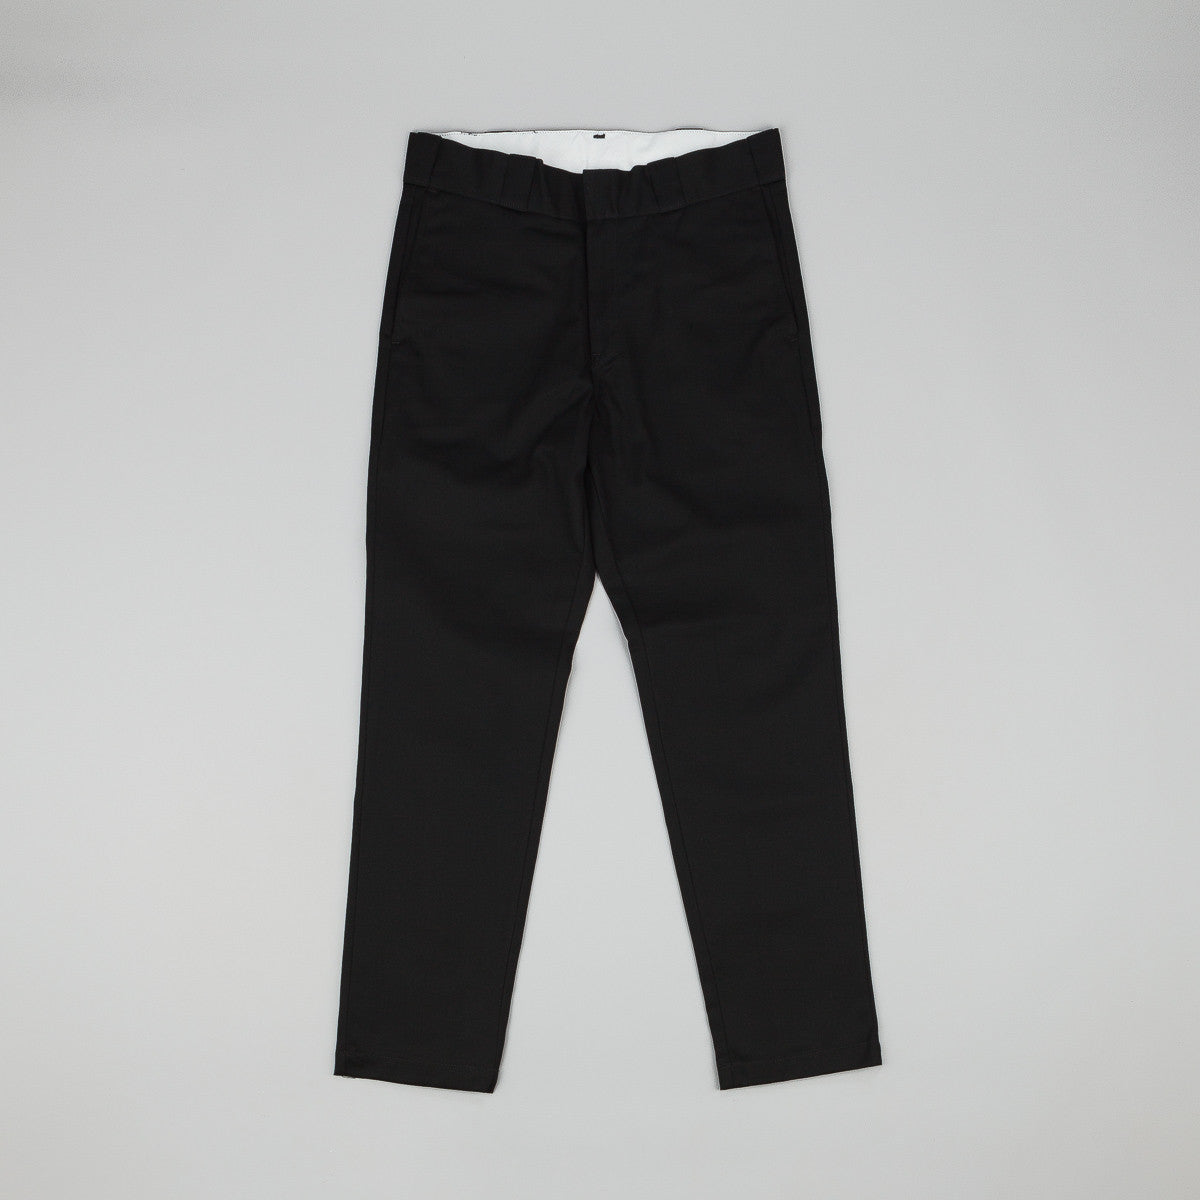 Carhartt Master Pant XXV Trousers - Black Rigid